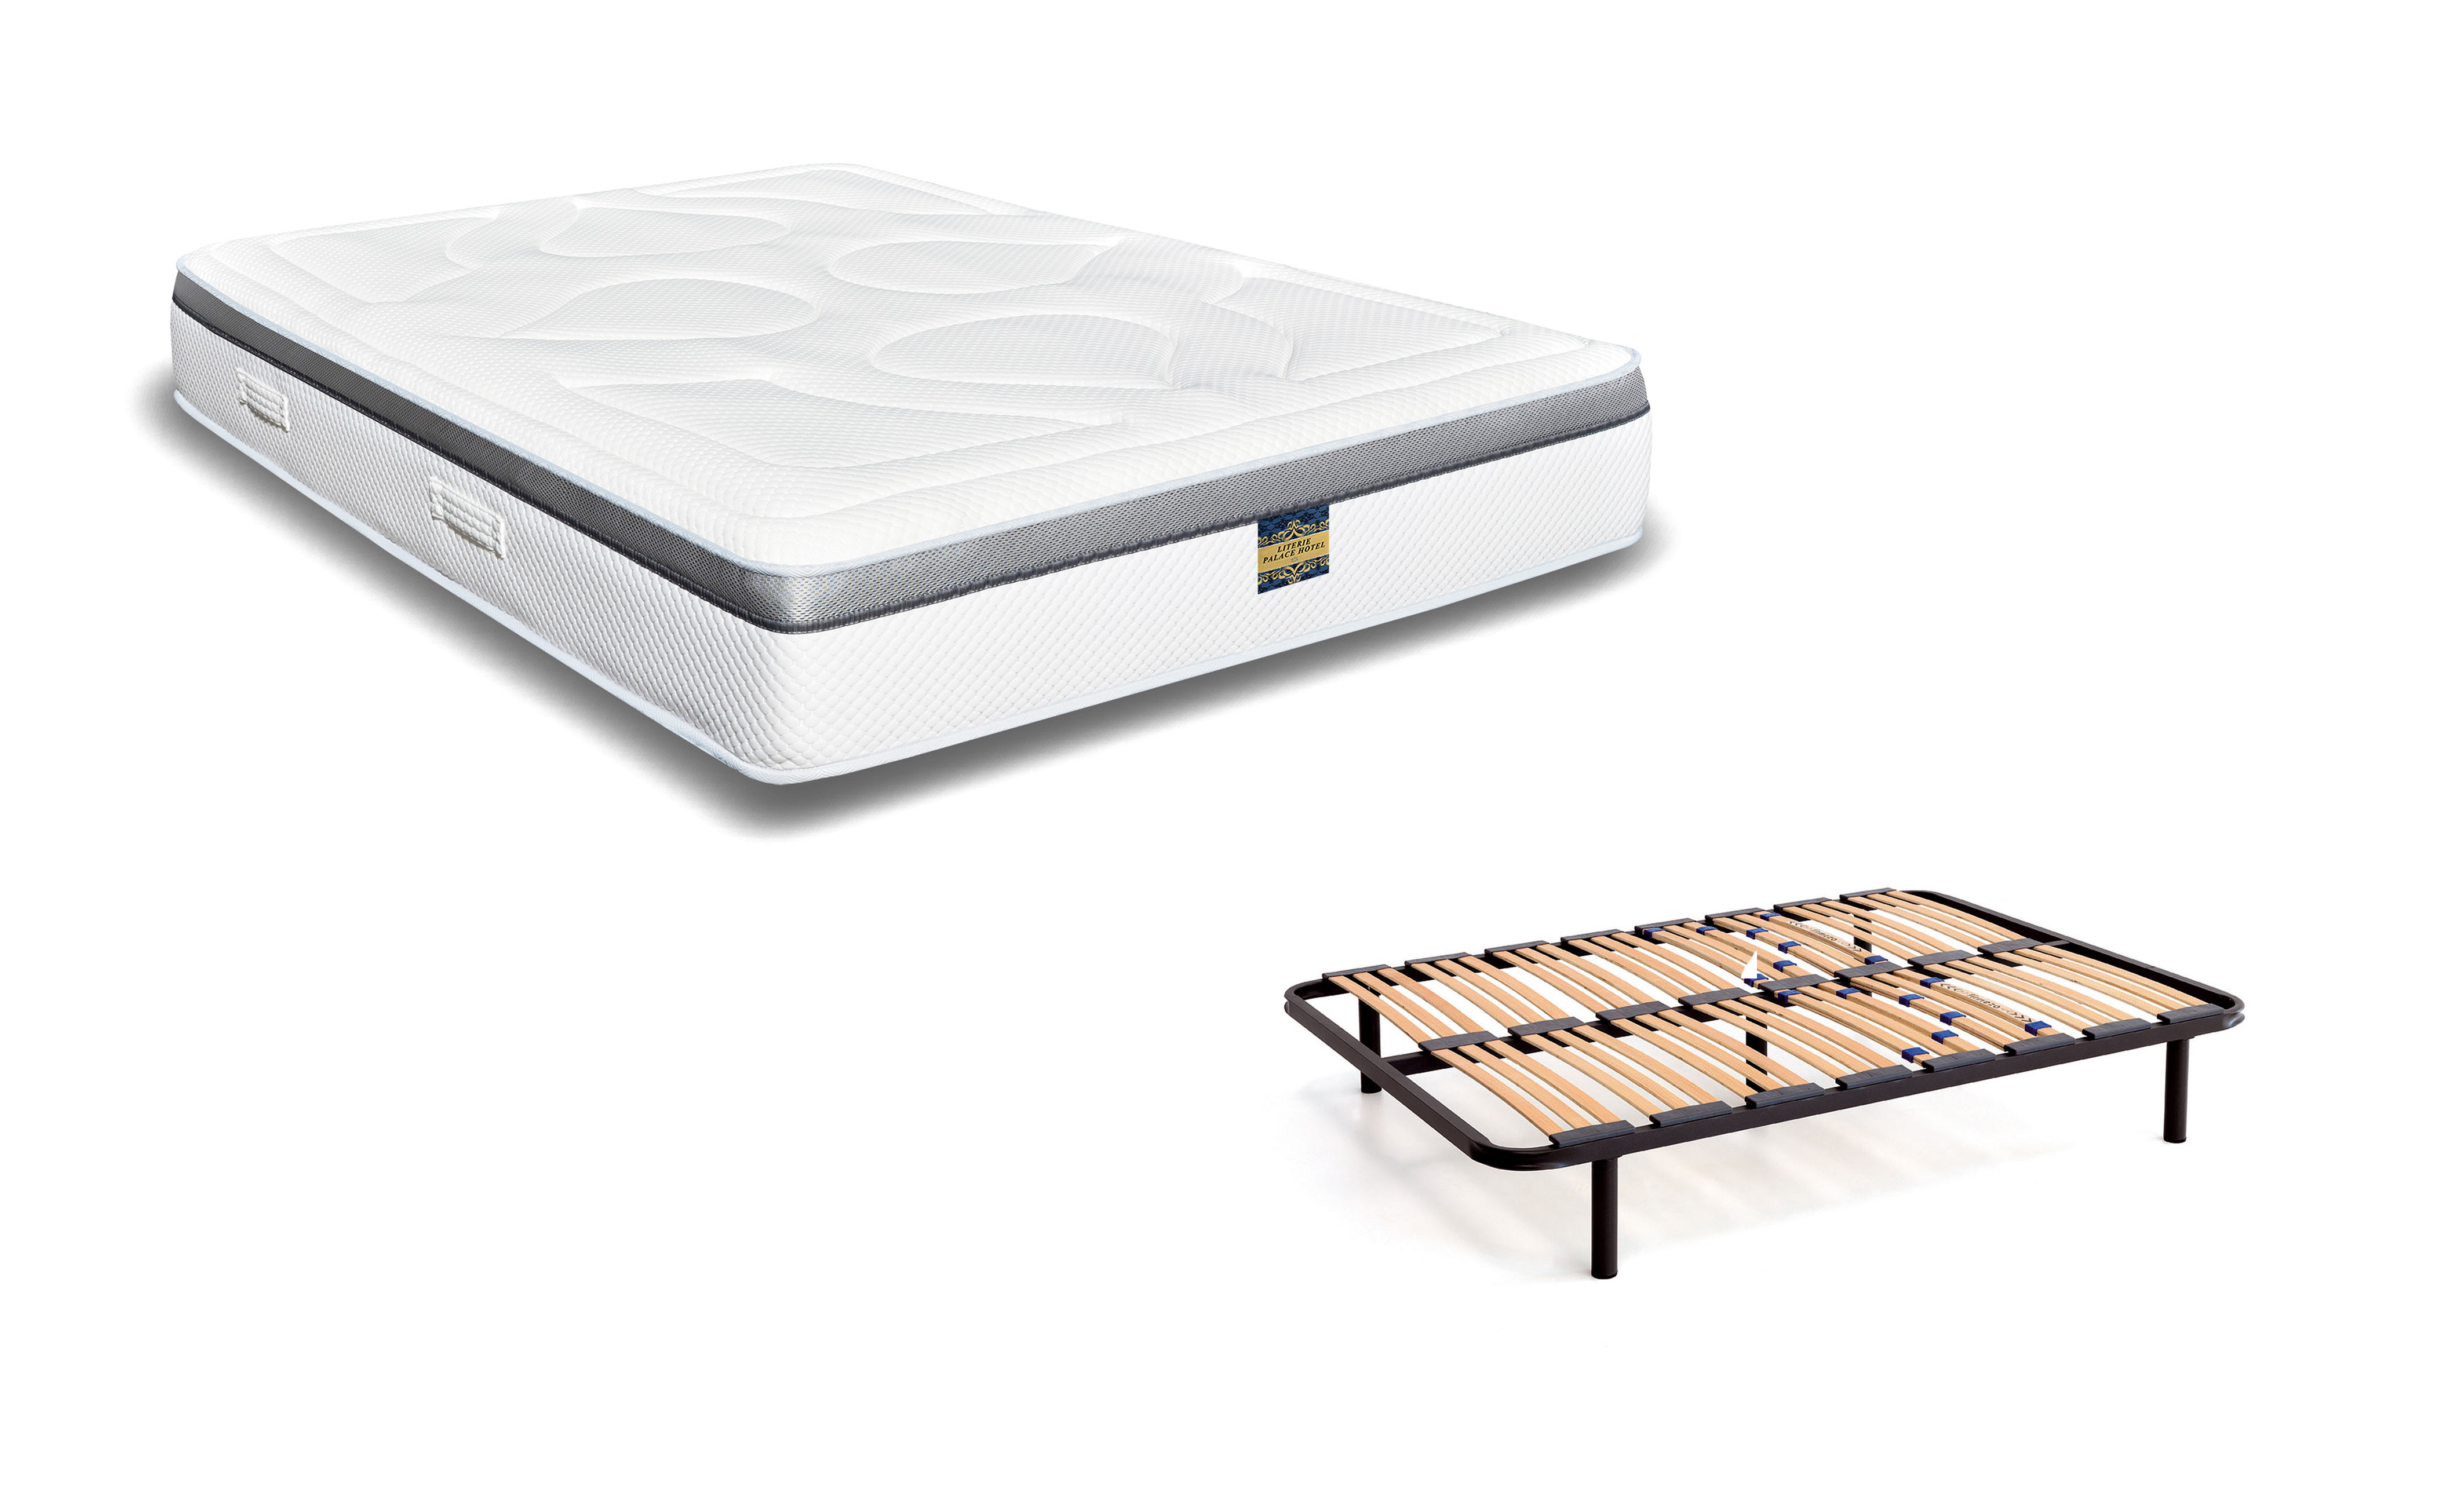 marque matelas hotel luxe amazing matelas htel latex suprme x cm with marque matelas hotel luxe. Black Bedroom Furniture Sets. Home Design Ideas